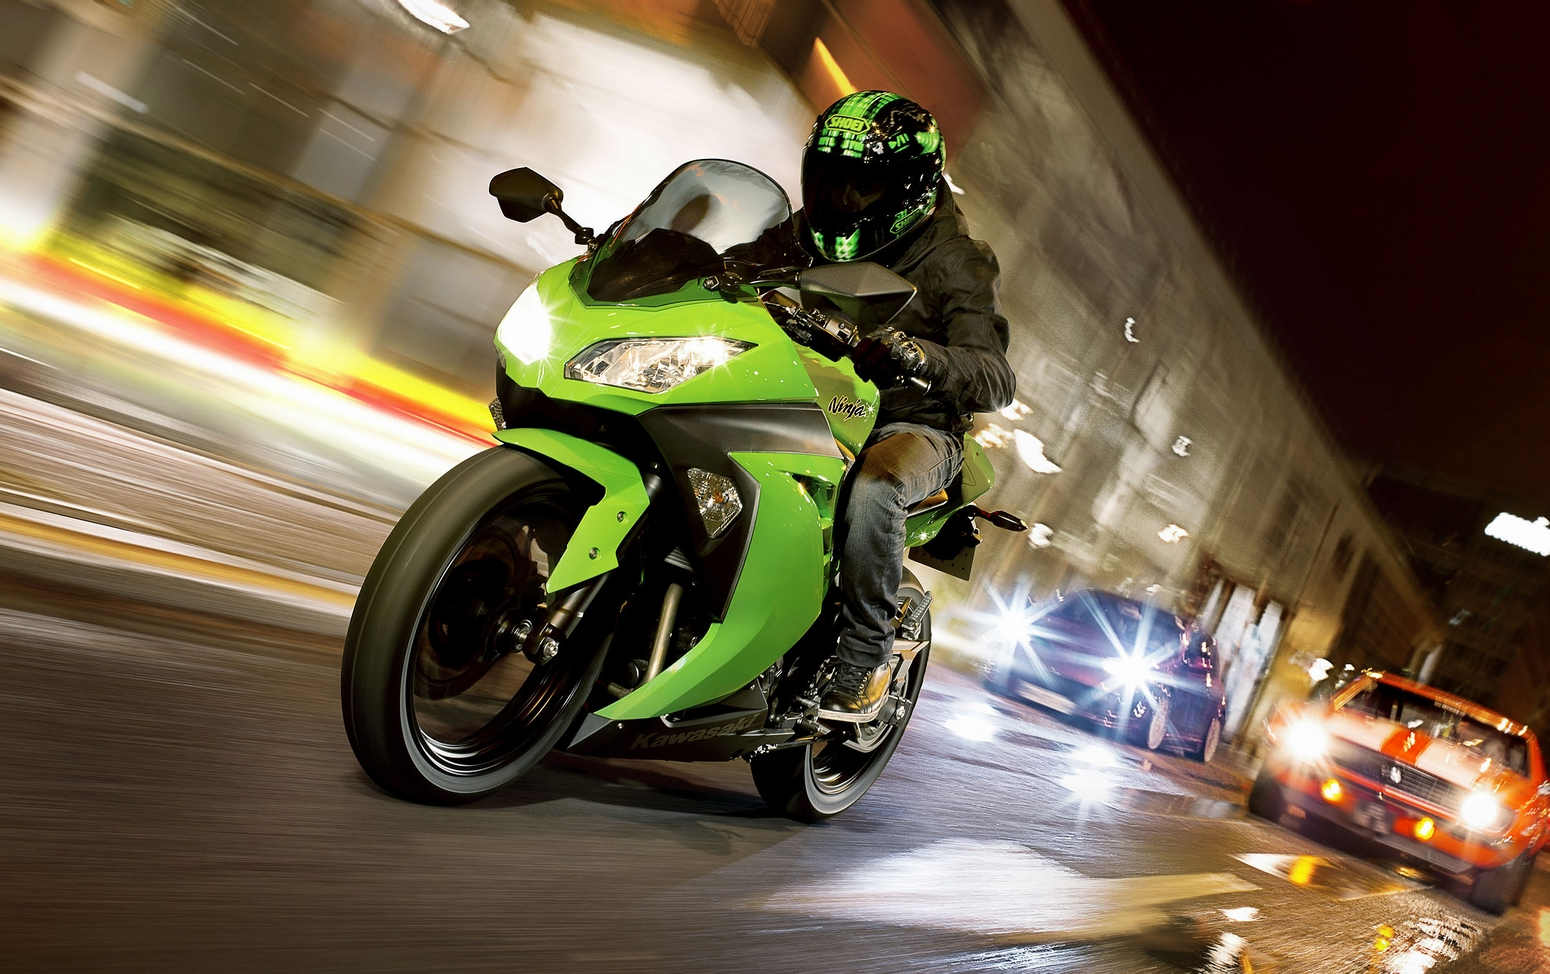 Kawasaki Ninja 300 Green » Bike Routes